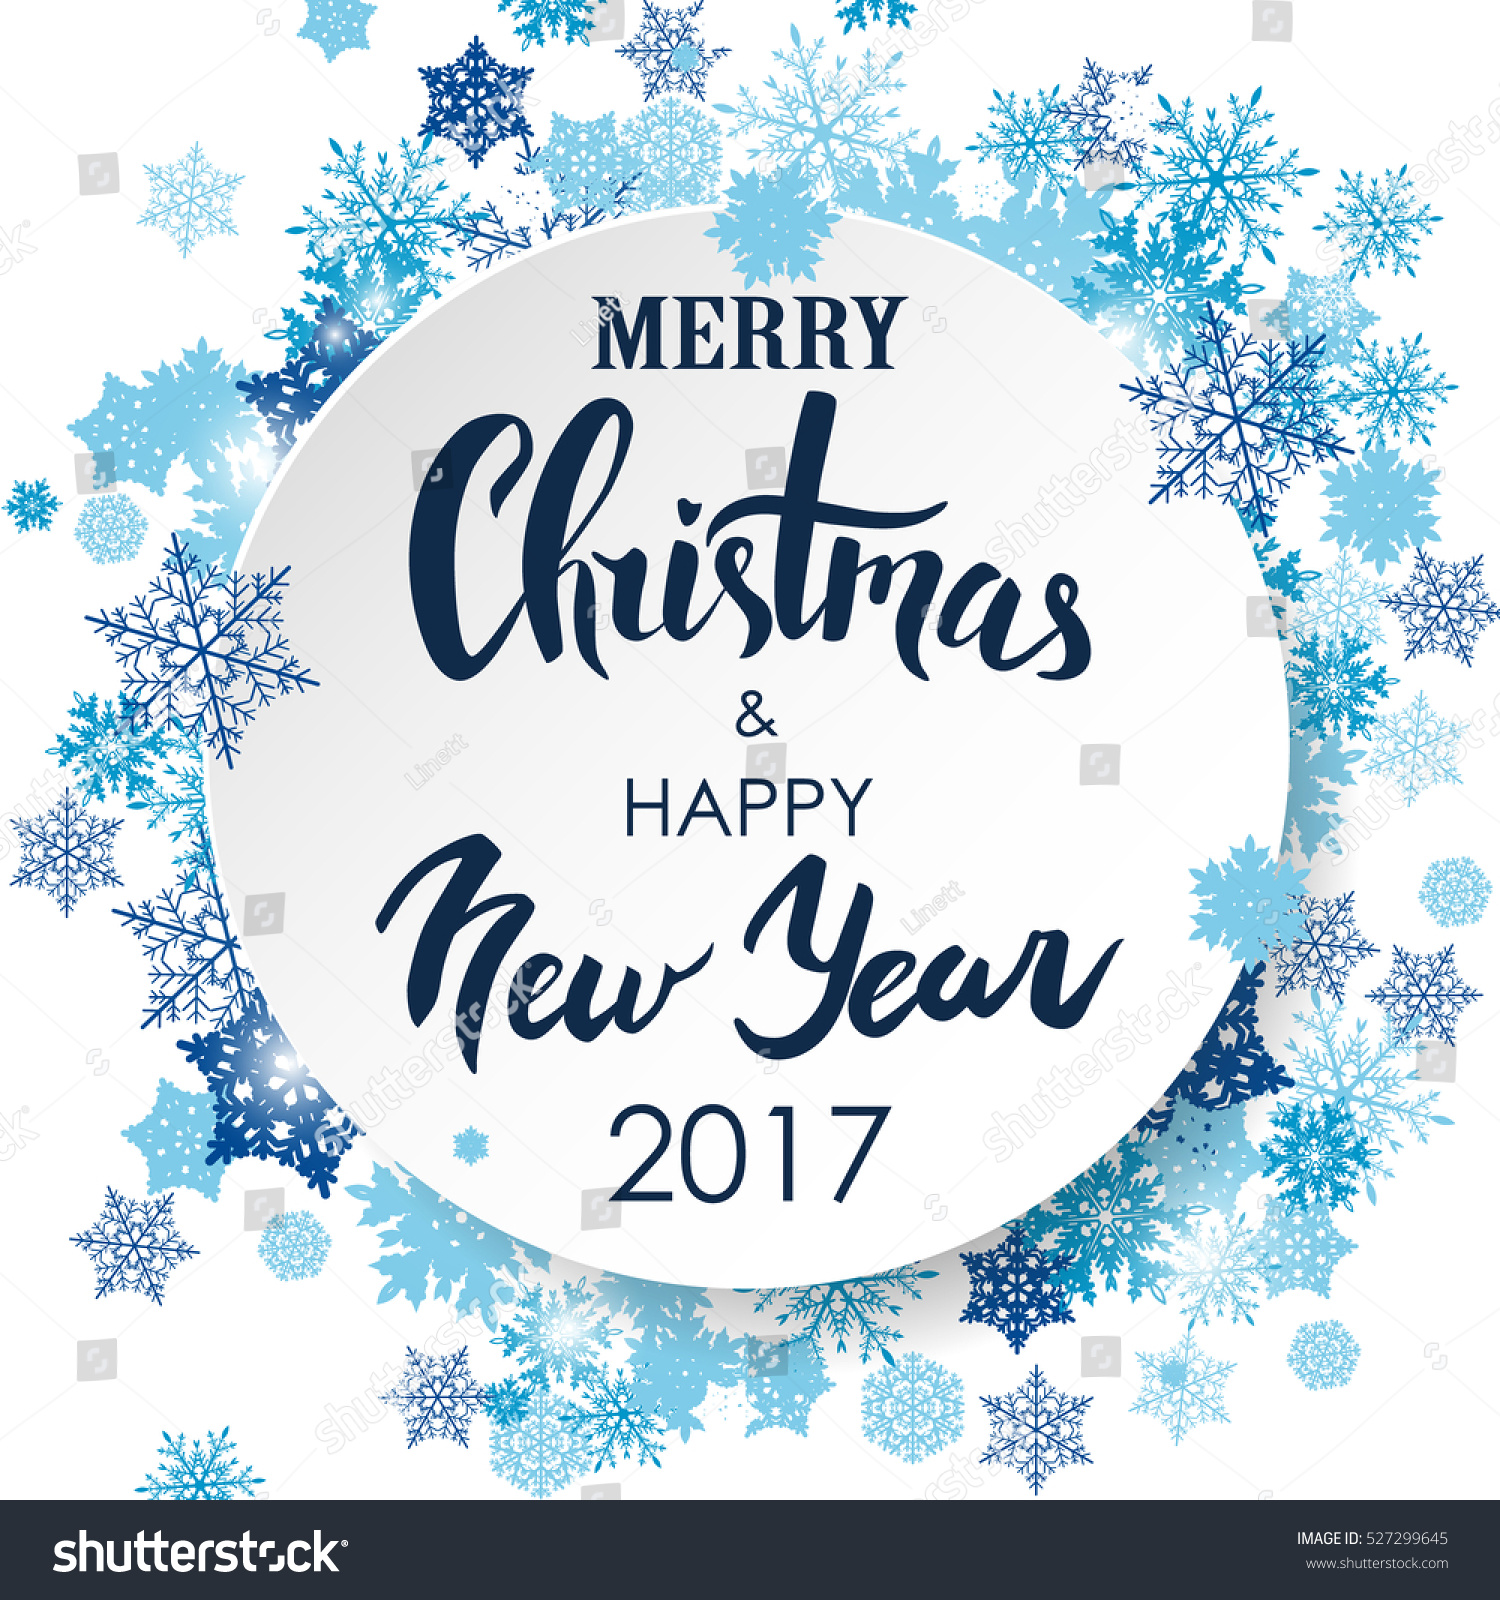 Merry Christmas Happy New Year Lettering Stock Vector (Royalty Free ...